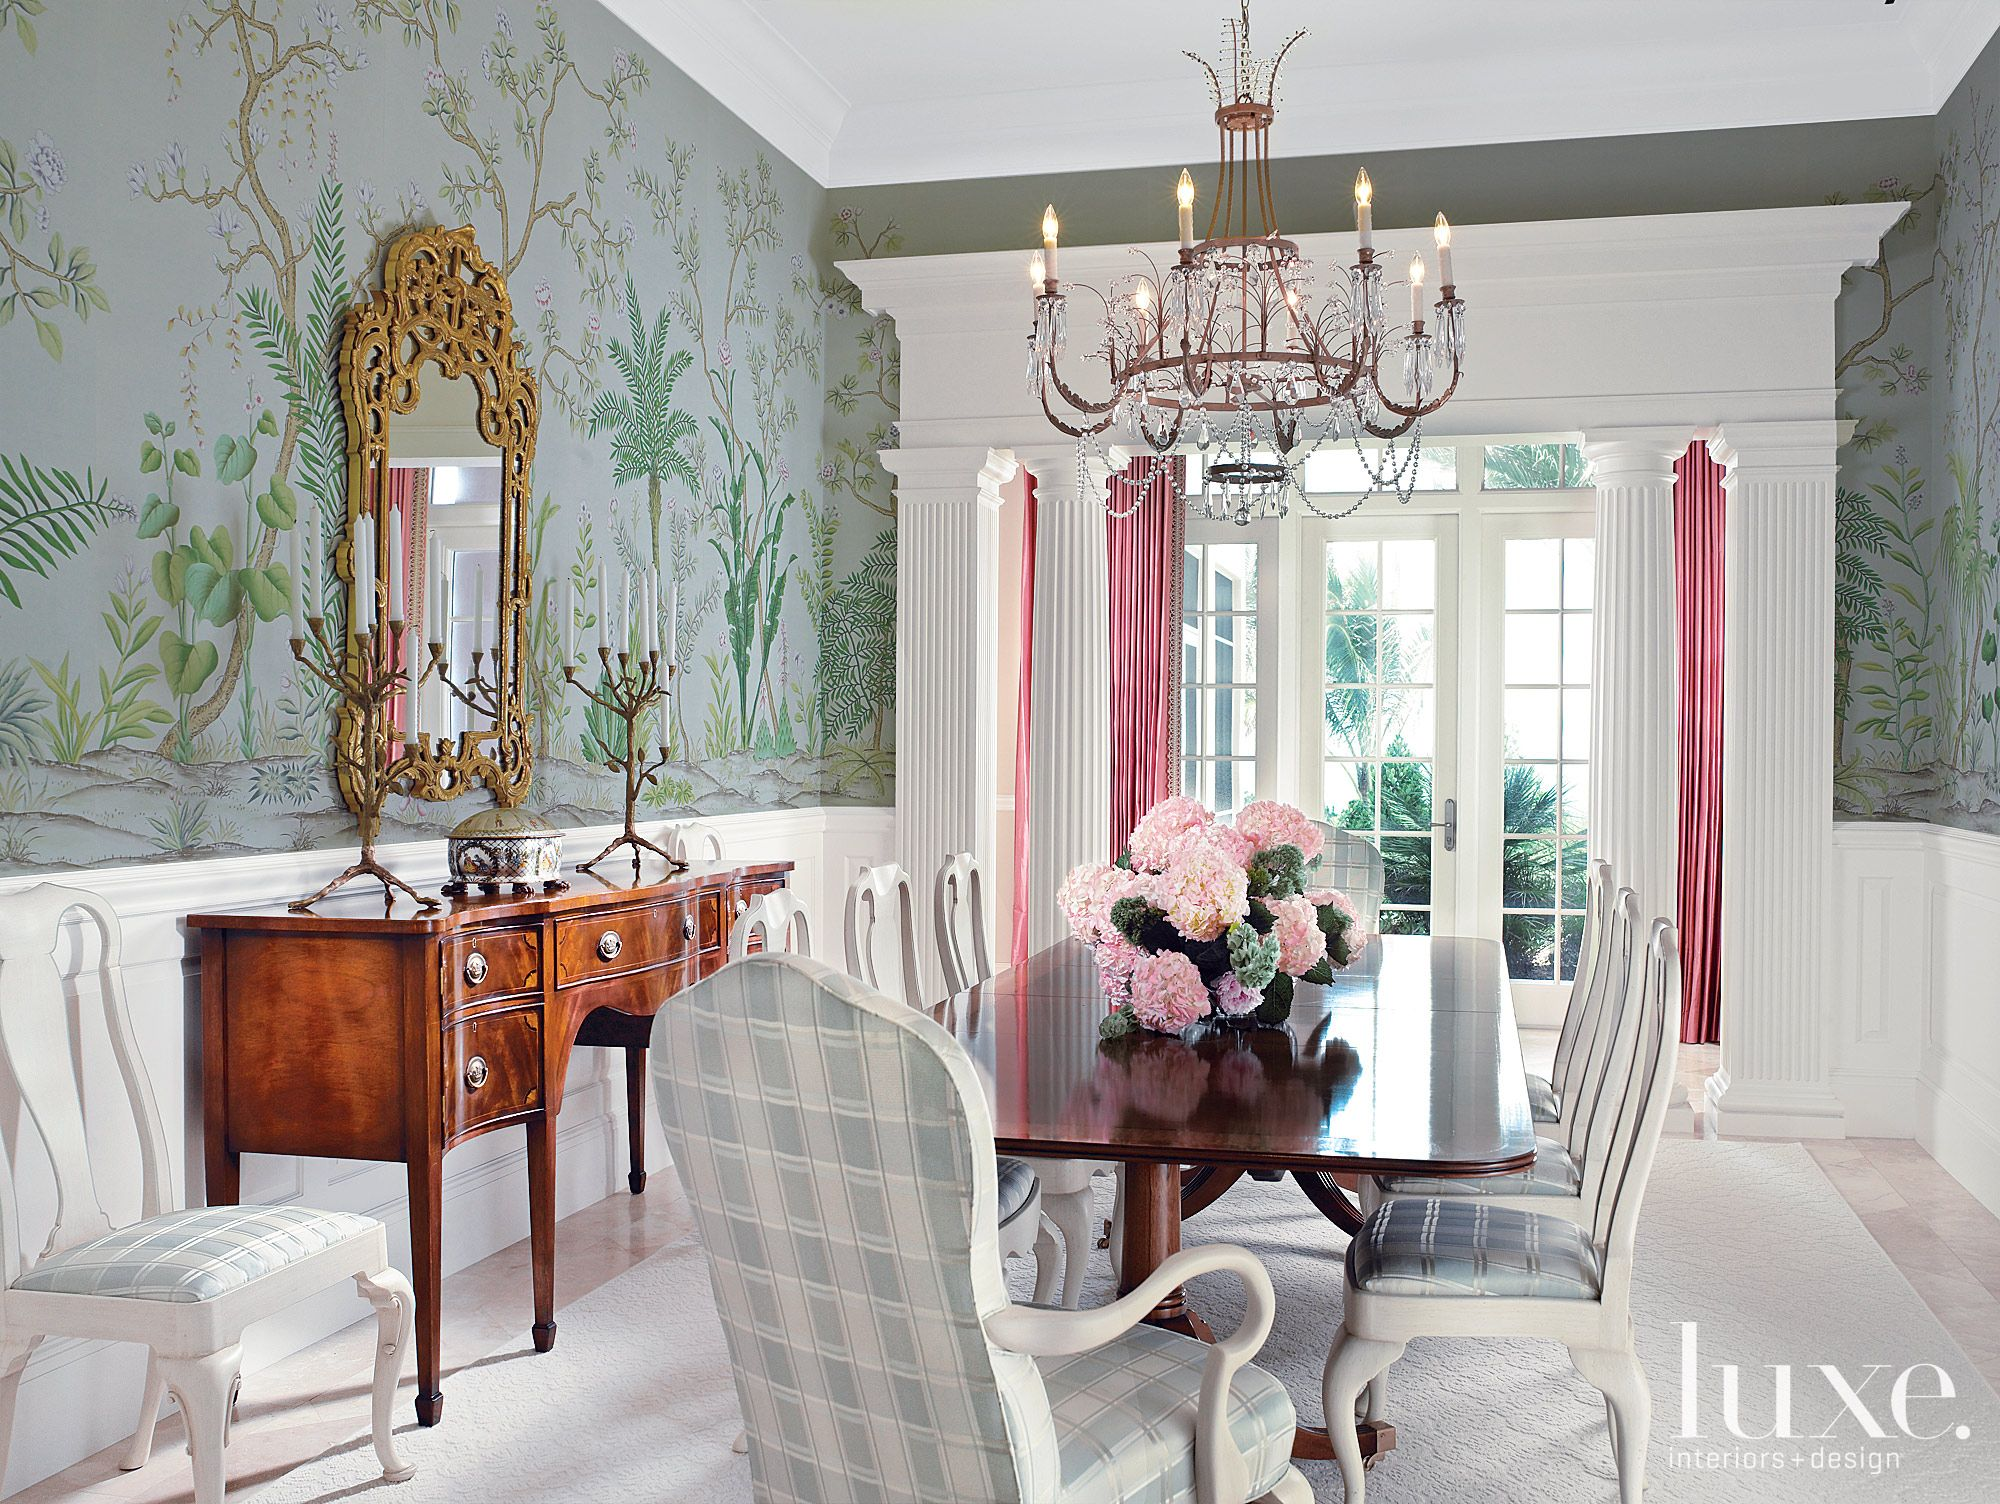 Find This Pin And More On Dining Room / Esszimmer / Jadalnia   Luxury.